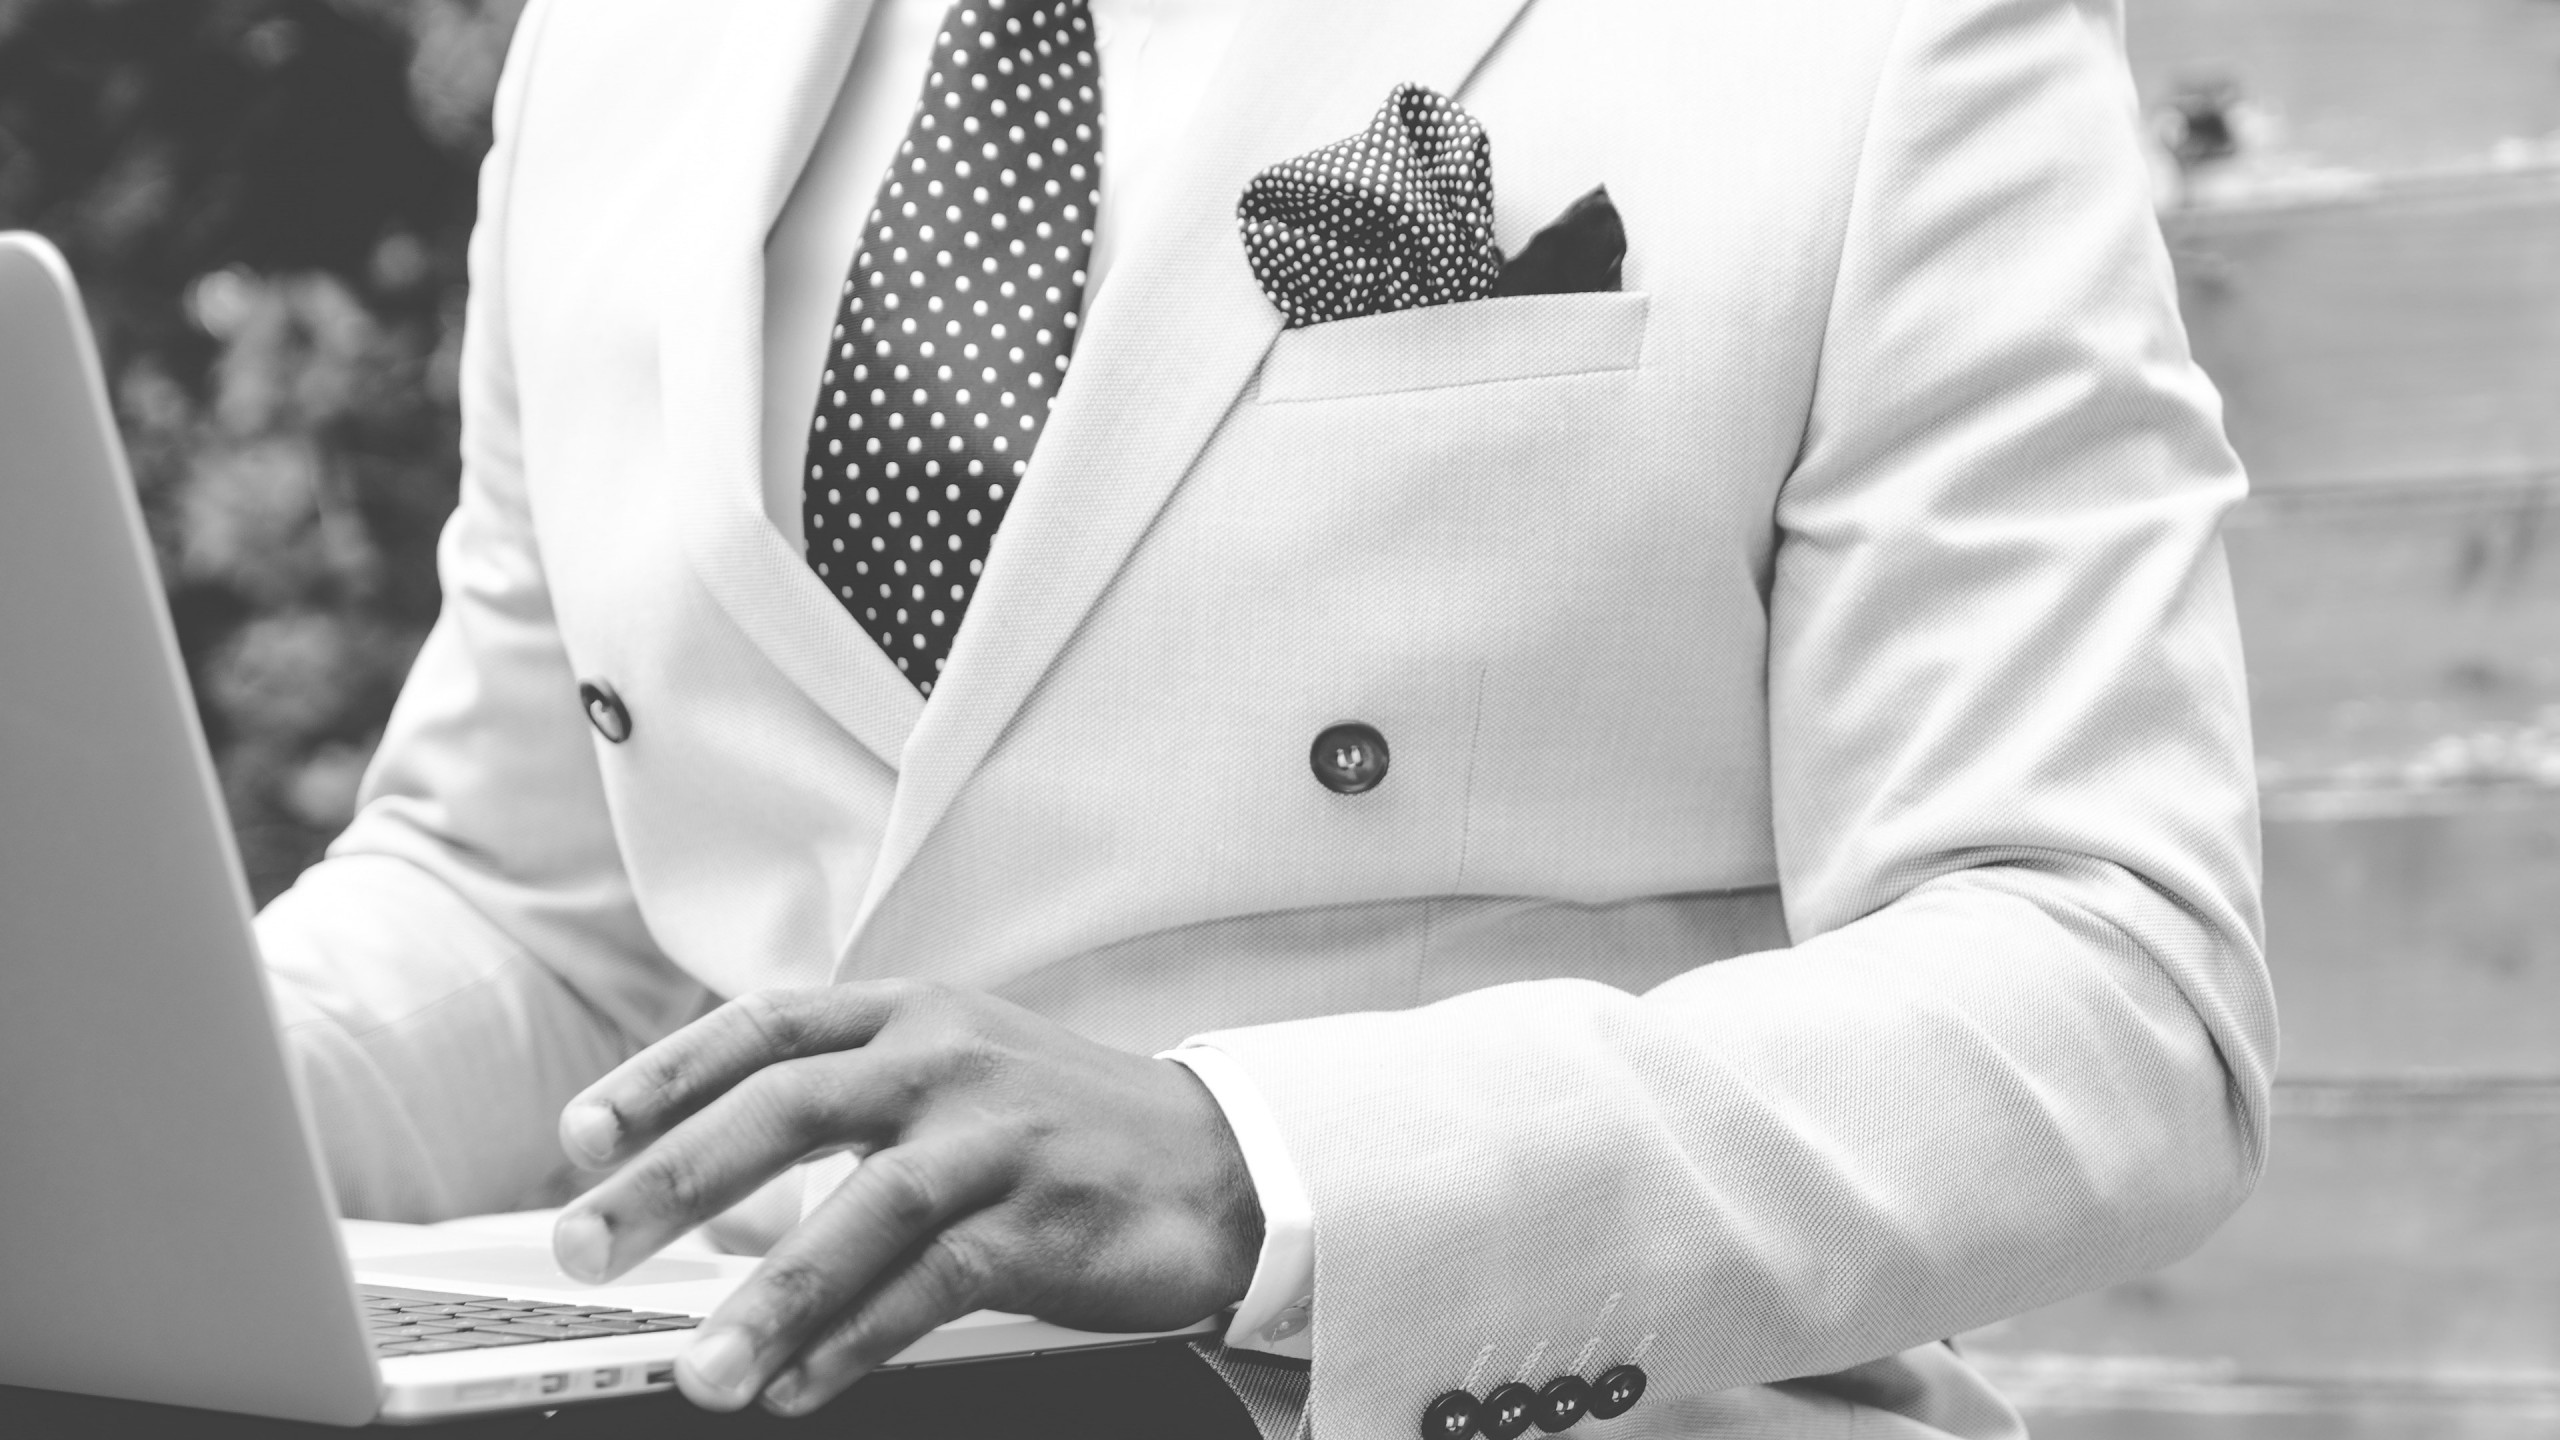 Download Wallpaper Stylish Man With His Laptop 2560x1440